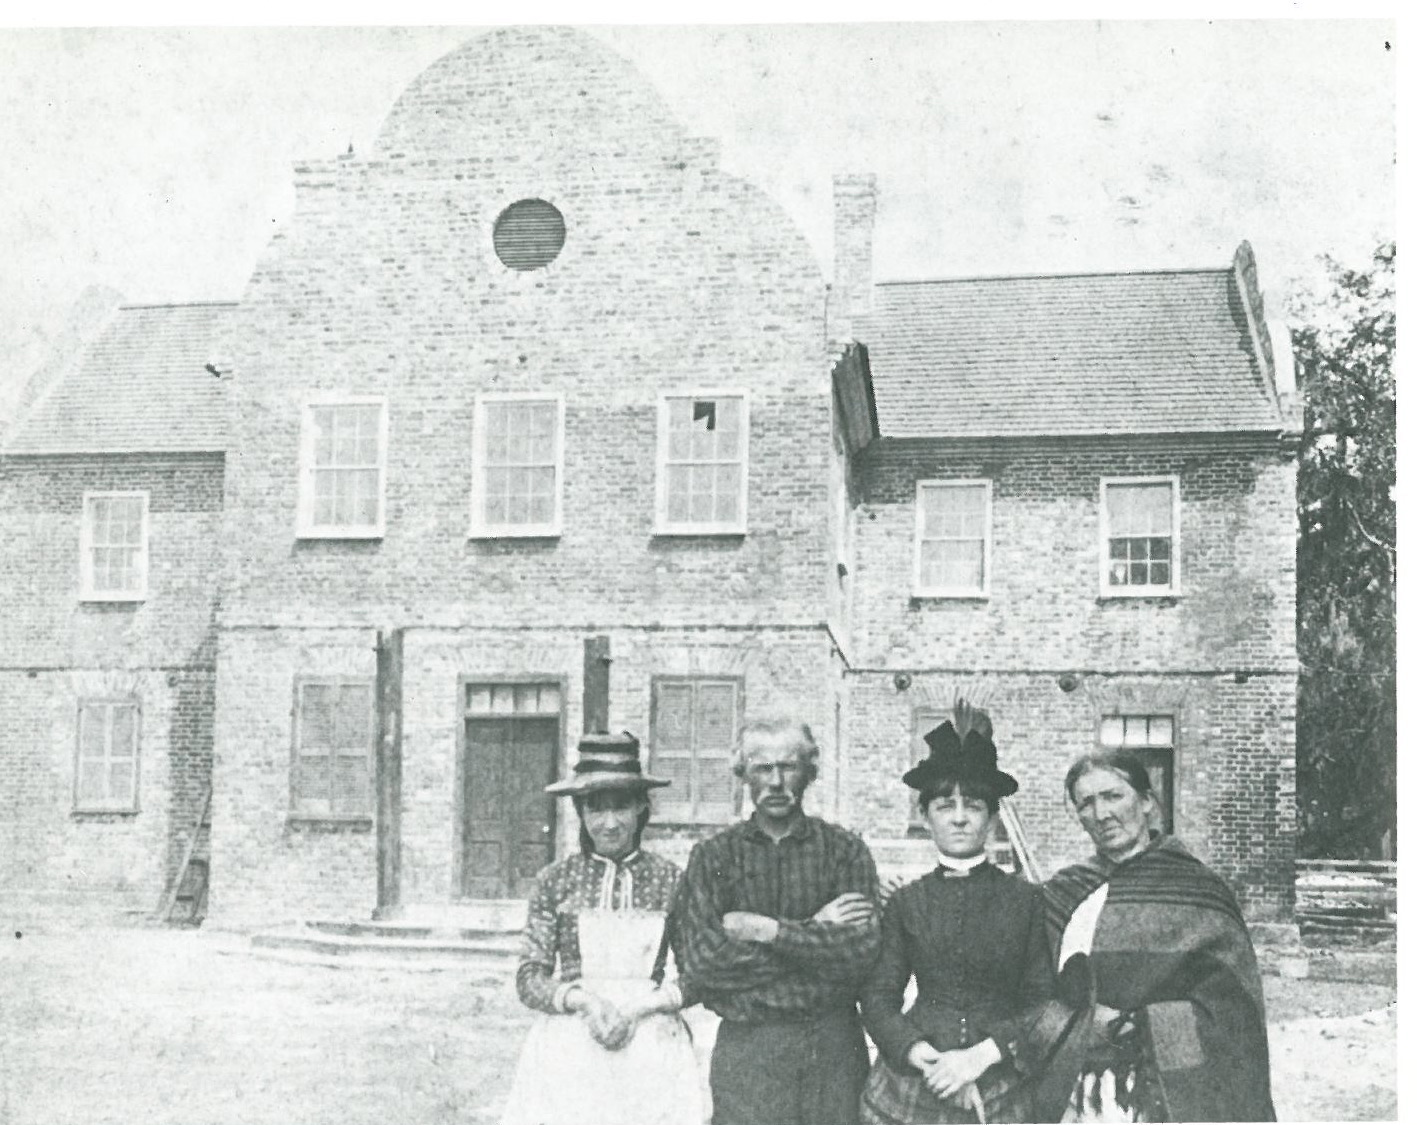 A Middleton Place tenant family, posed in front of the South Wing, the only remaining portion of the Plantation Houses. Photo taken circa 1886. Image courtesy of CHARLESTON:COME HELL OR HIGH WATER, by Whitelaw & Levkoff.